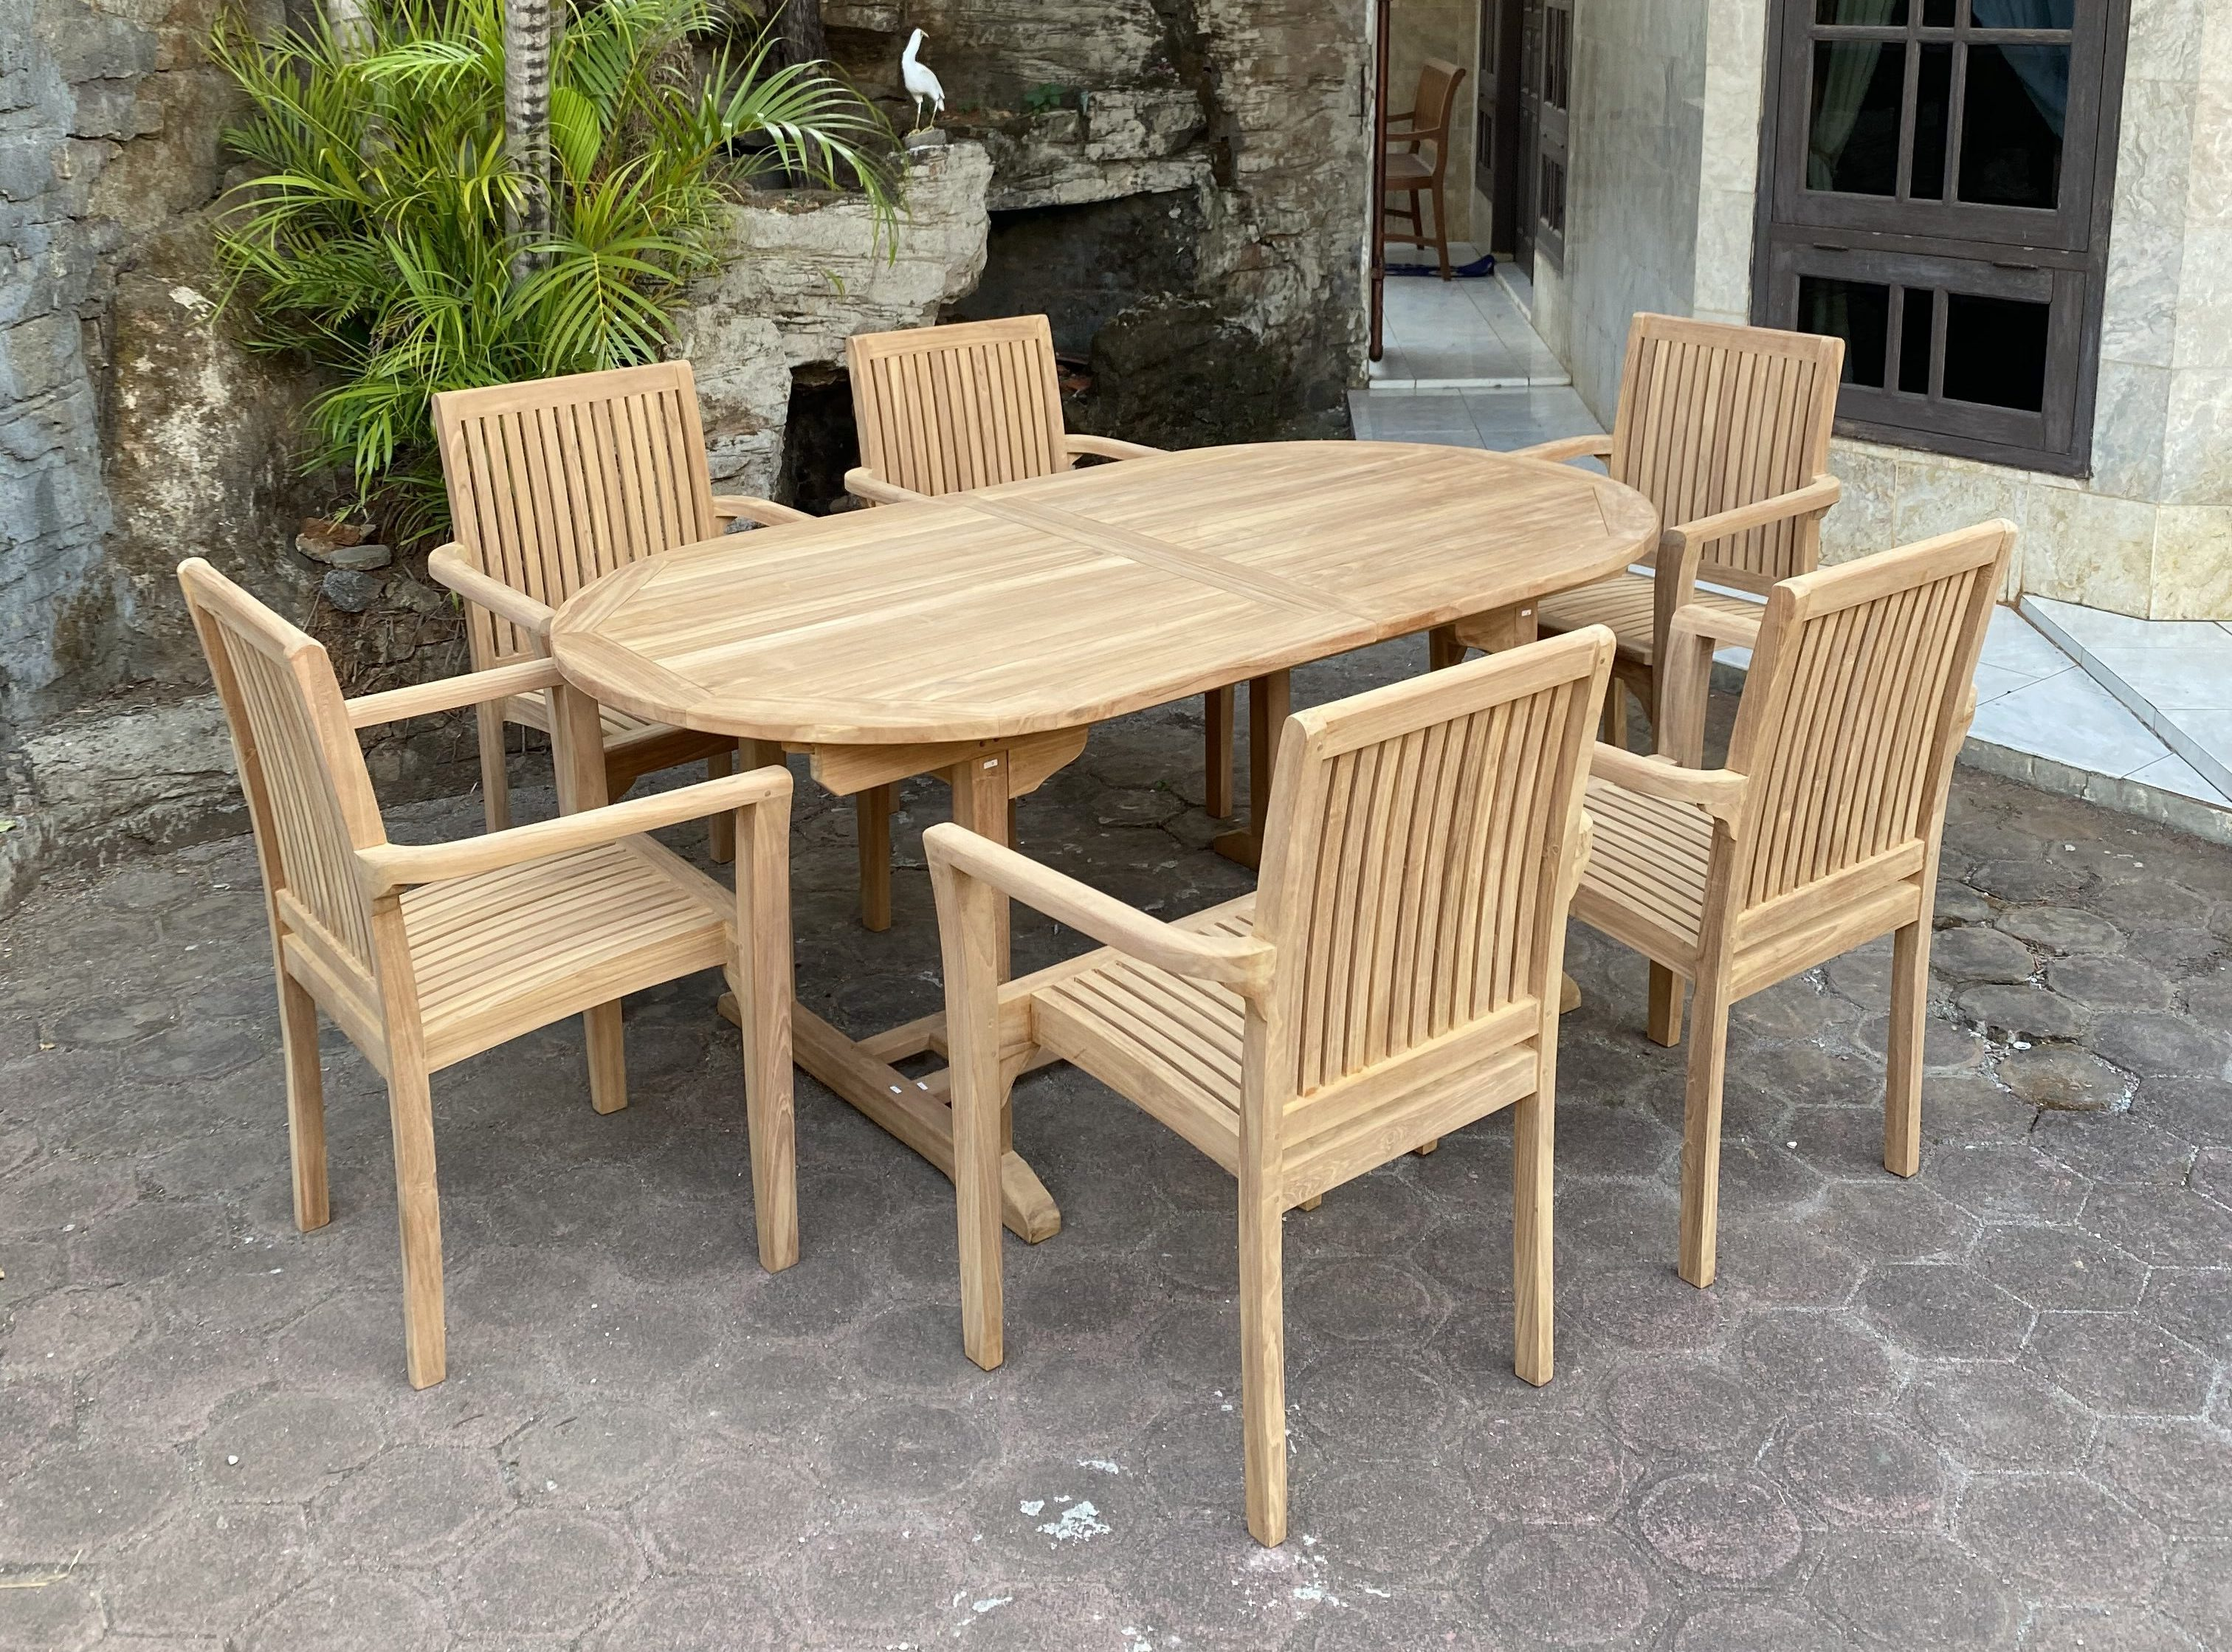 Indonesia Indoor Teak Furniture Manufacturer And Exporter Indonesia Solid Teak Furniture Manufacturer